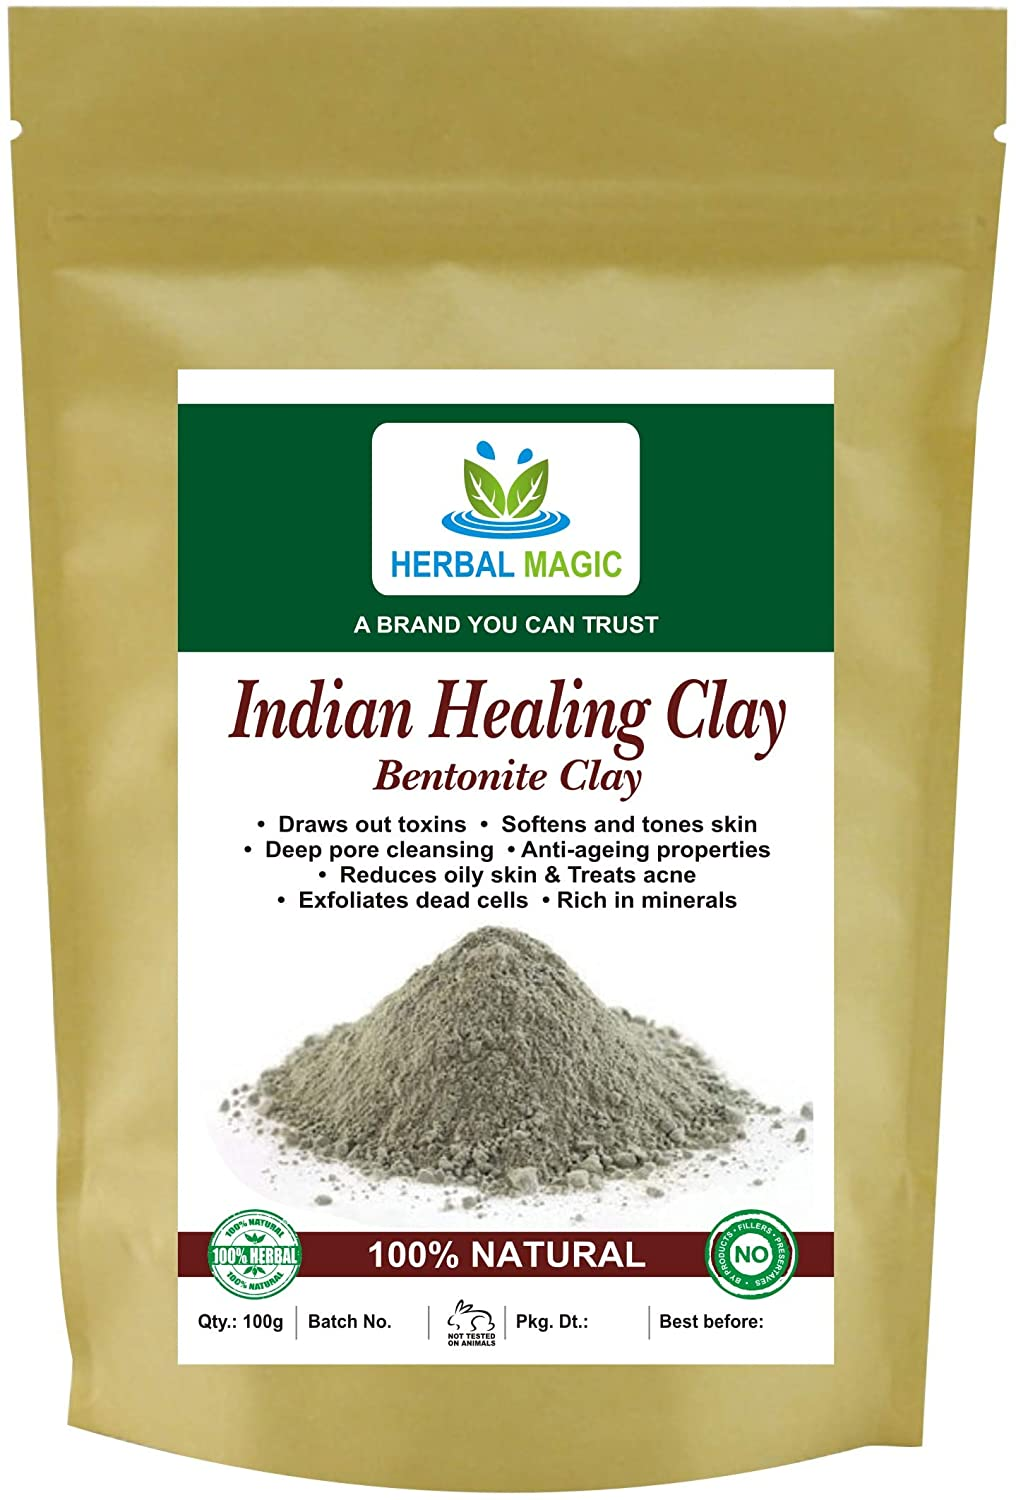 Herbal Magic Indian Healing Clay Skin Care Powder - Rich In Minerals & Anti-aging Properties - Softens & Tones Skin, Treats Acne, Dead Cells & Toxins - Natural Bentonite Clay Mask for Oily Skin, 100g